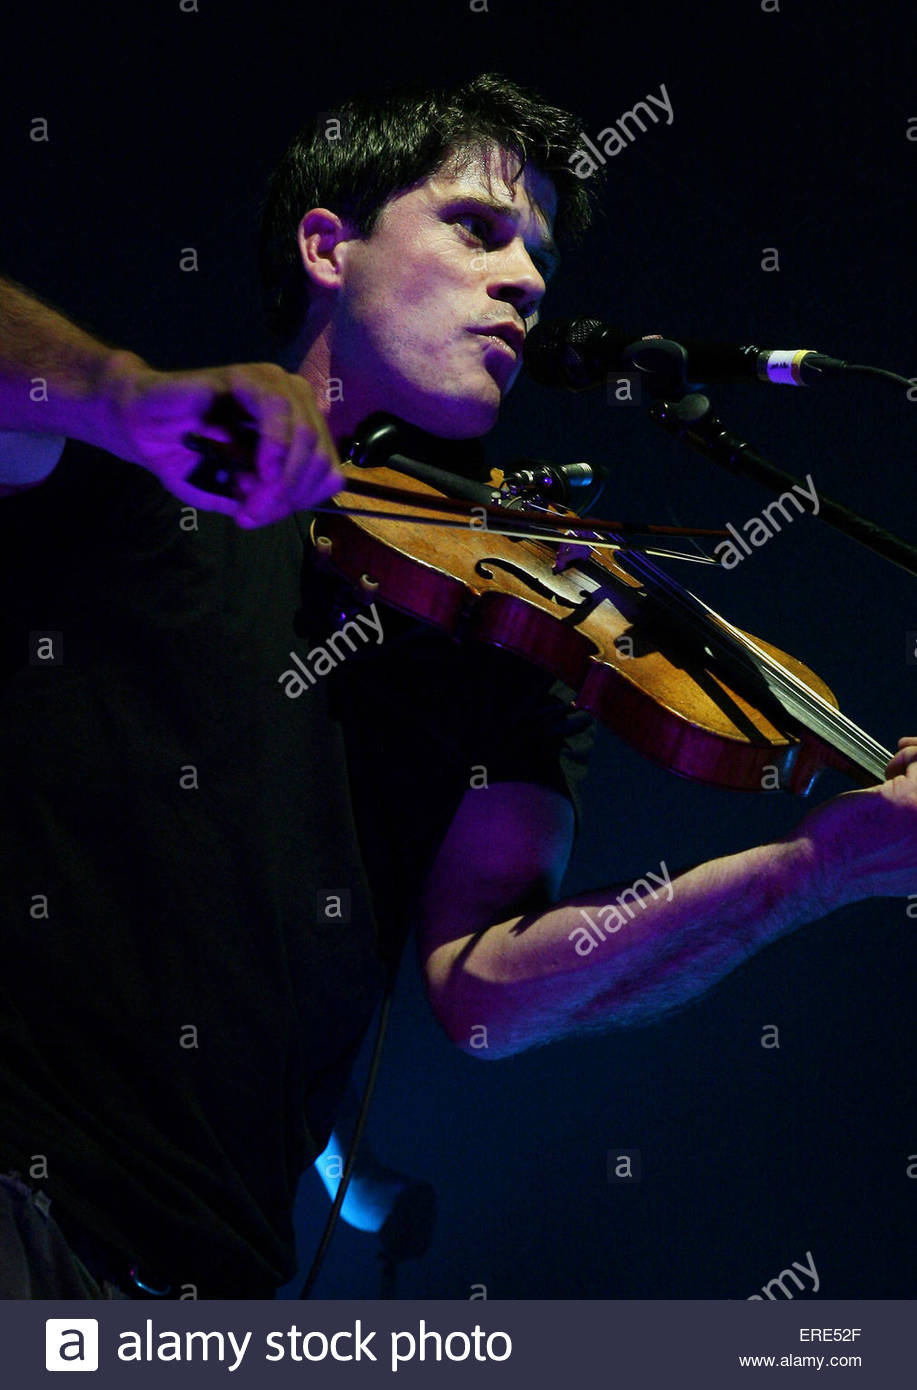 Seth Lakeman performing at Carling Academy Bristol 11 October 2007 - Stock Image